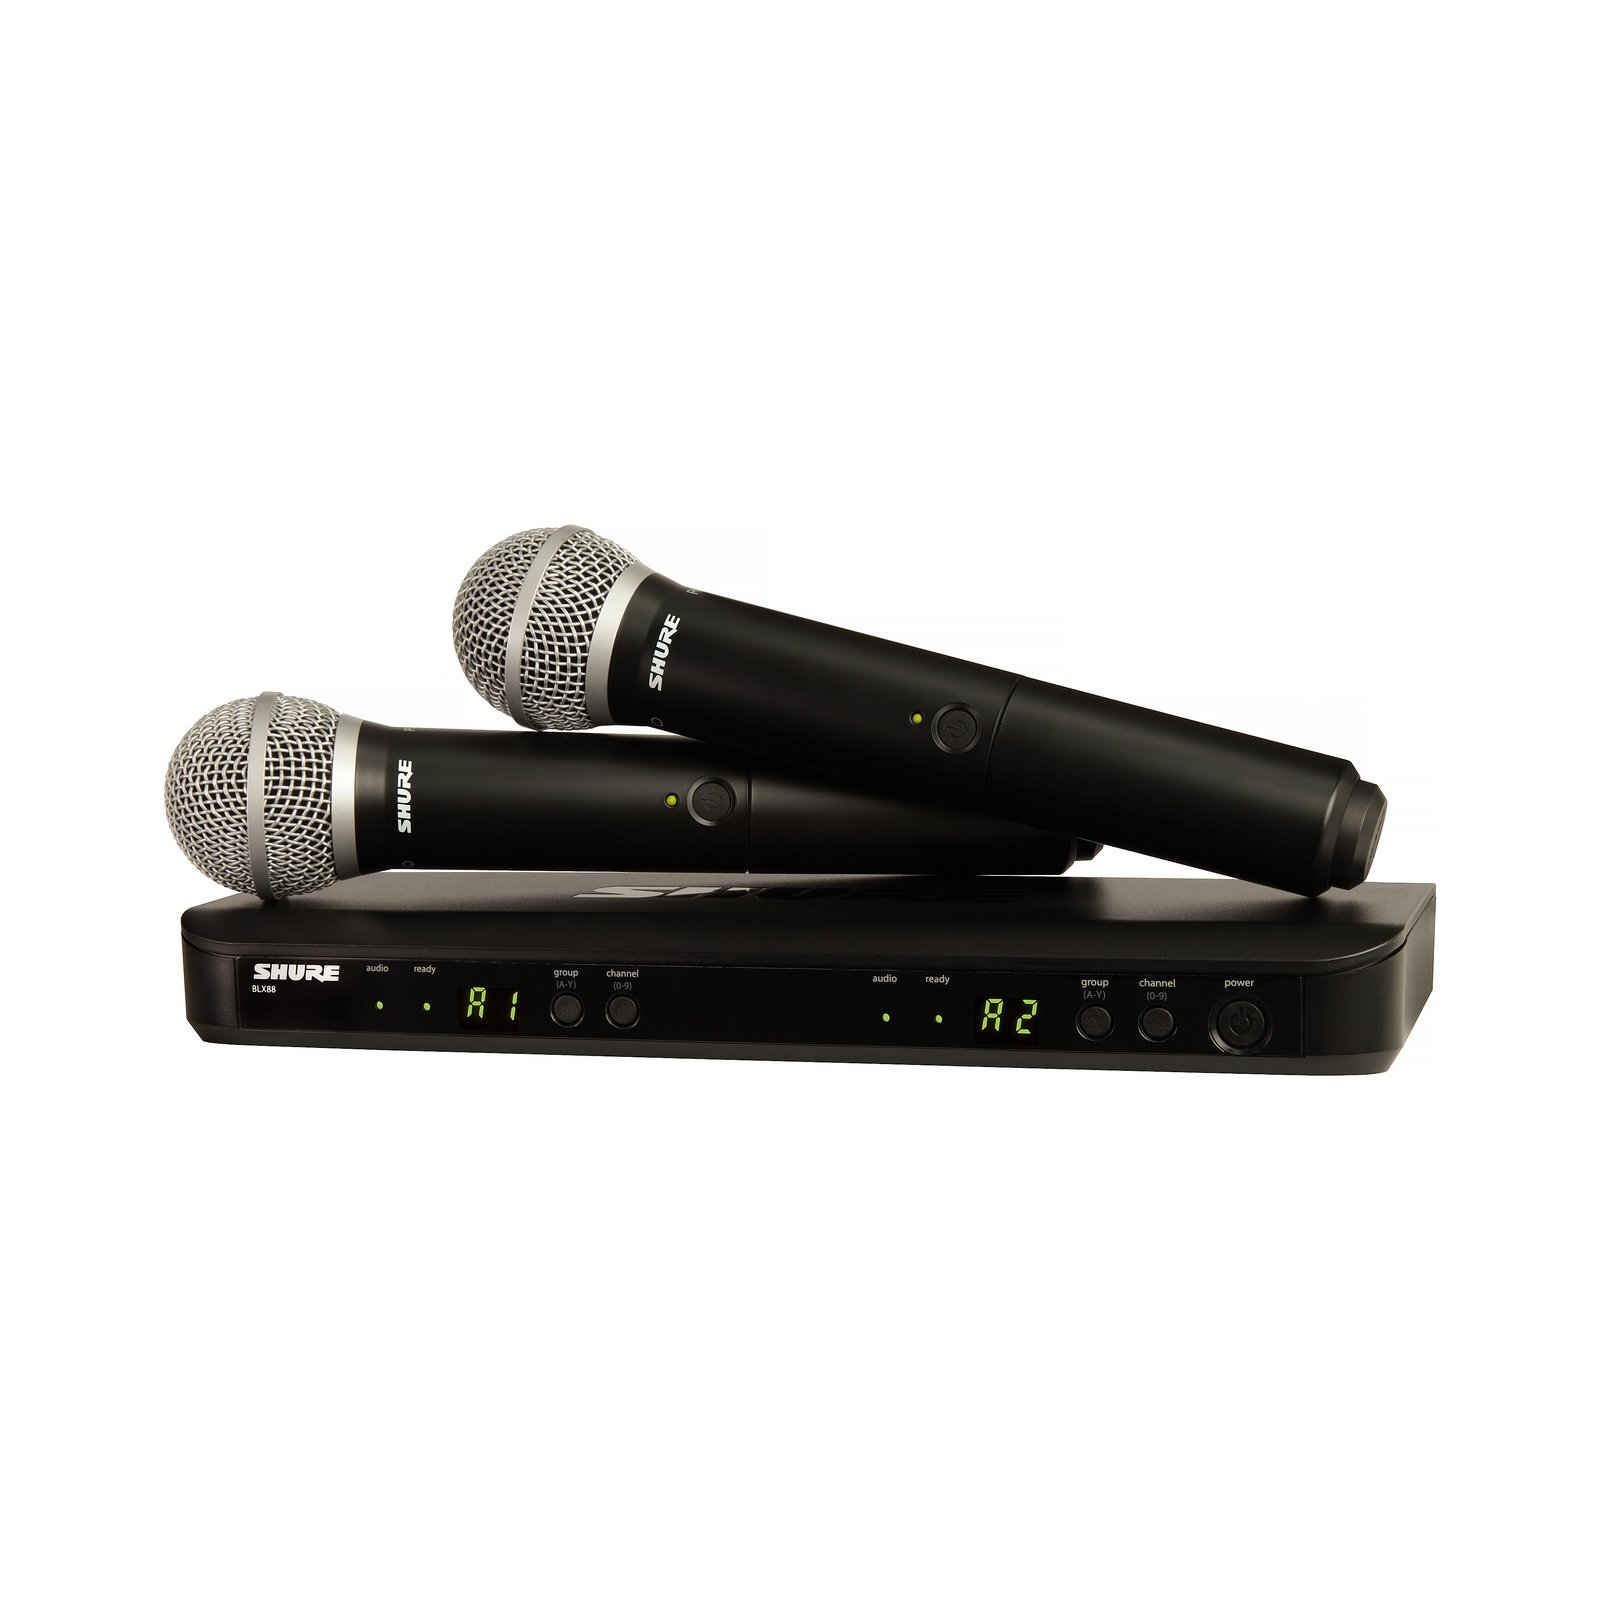 Shure BLX288/PG58 H9 | Two PG58 Handheld Microphones Dual Channel Handheld Wireless System by Shure (Image #1)